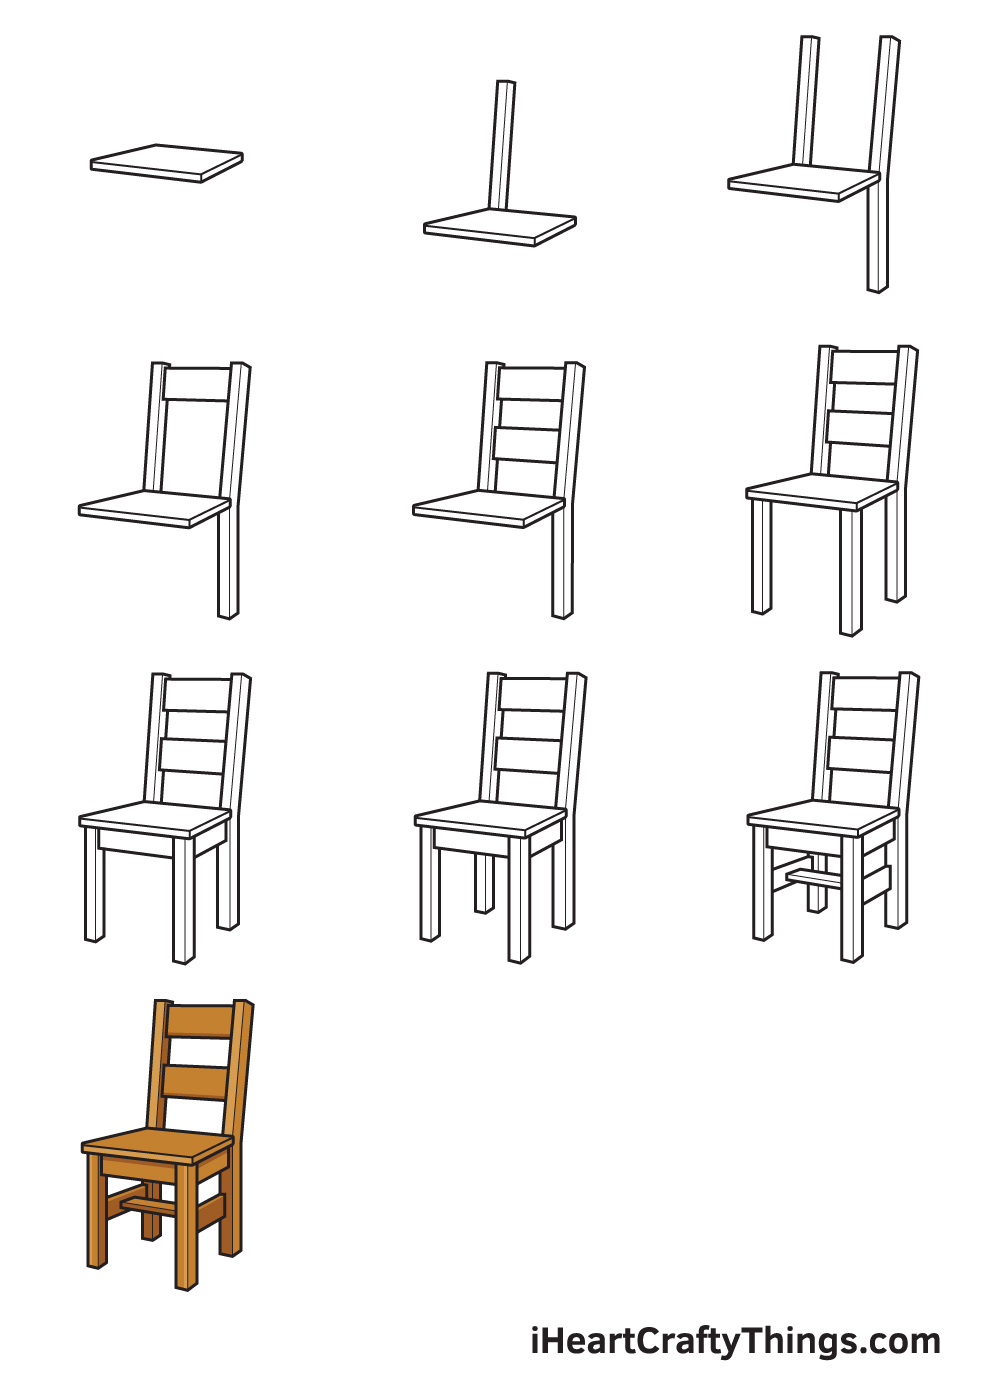 Drawing Chair in 9 Easy Steps